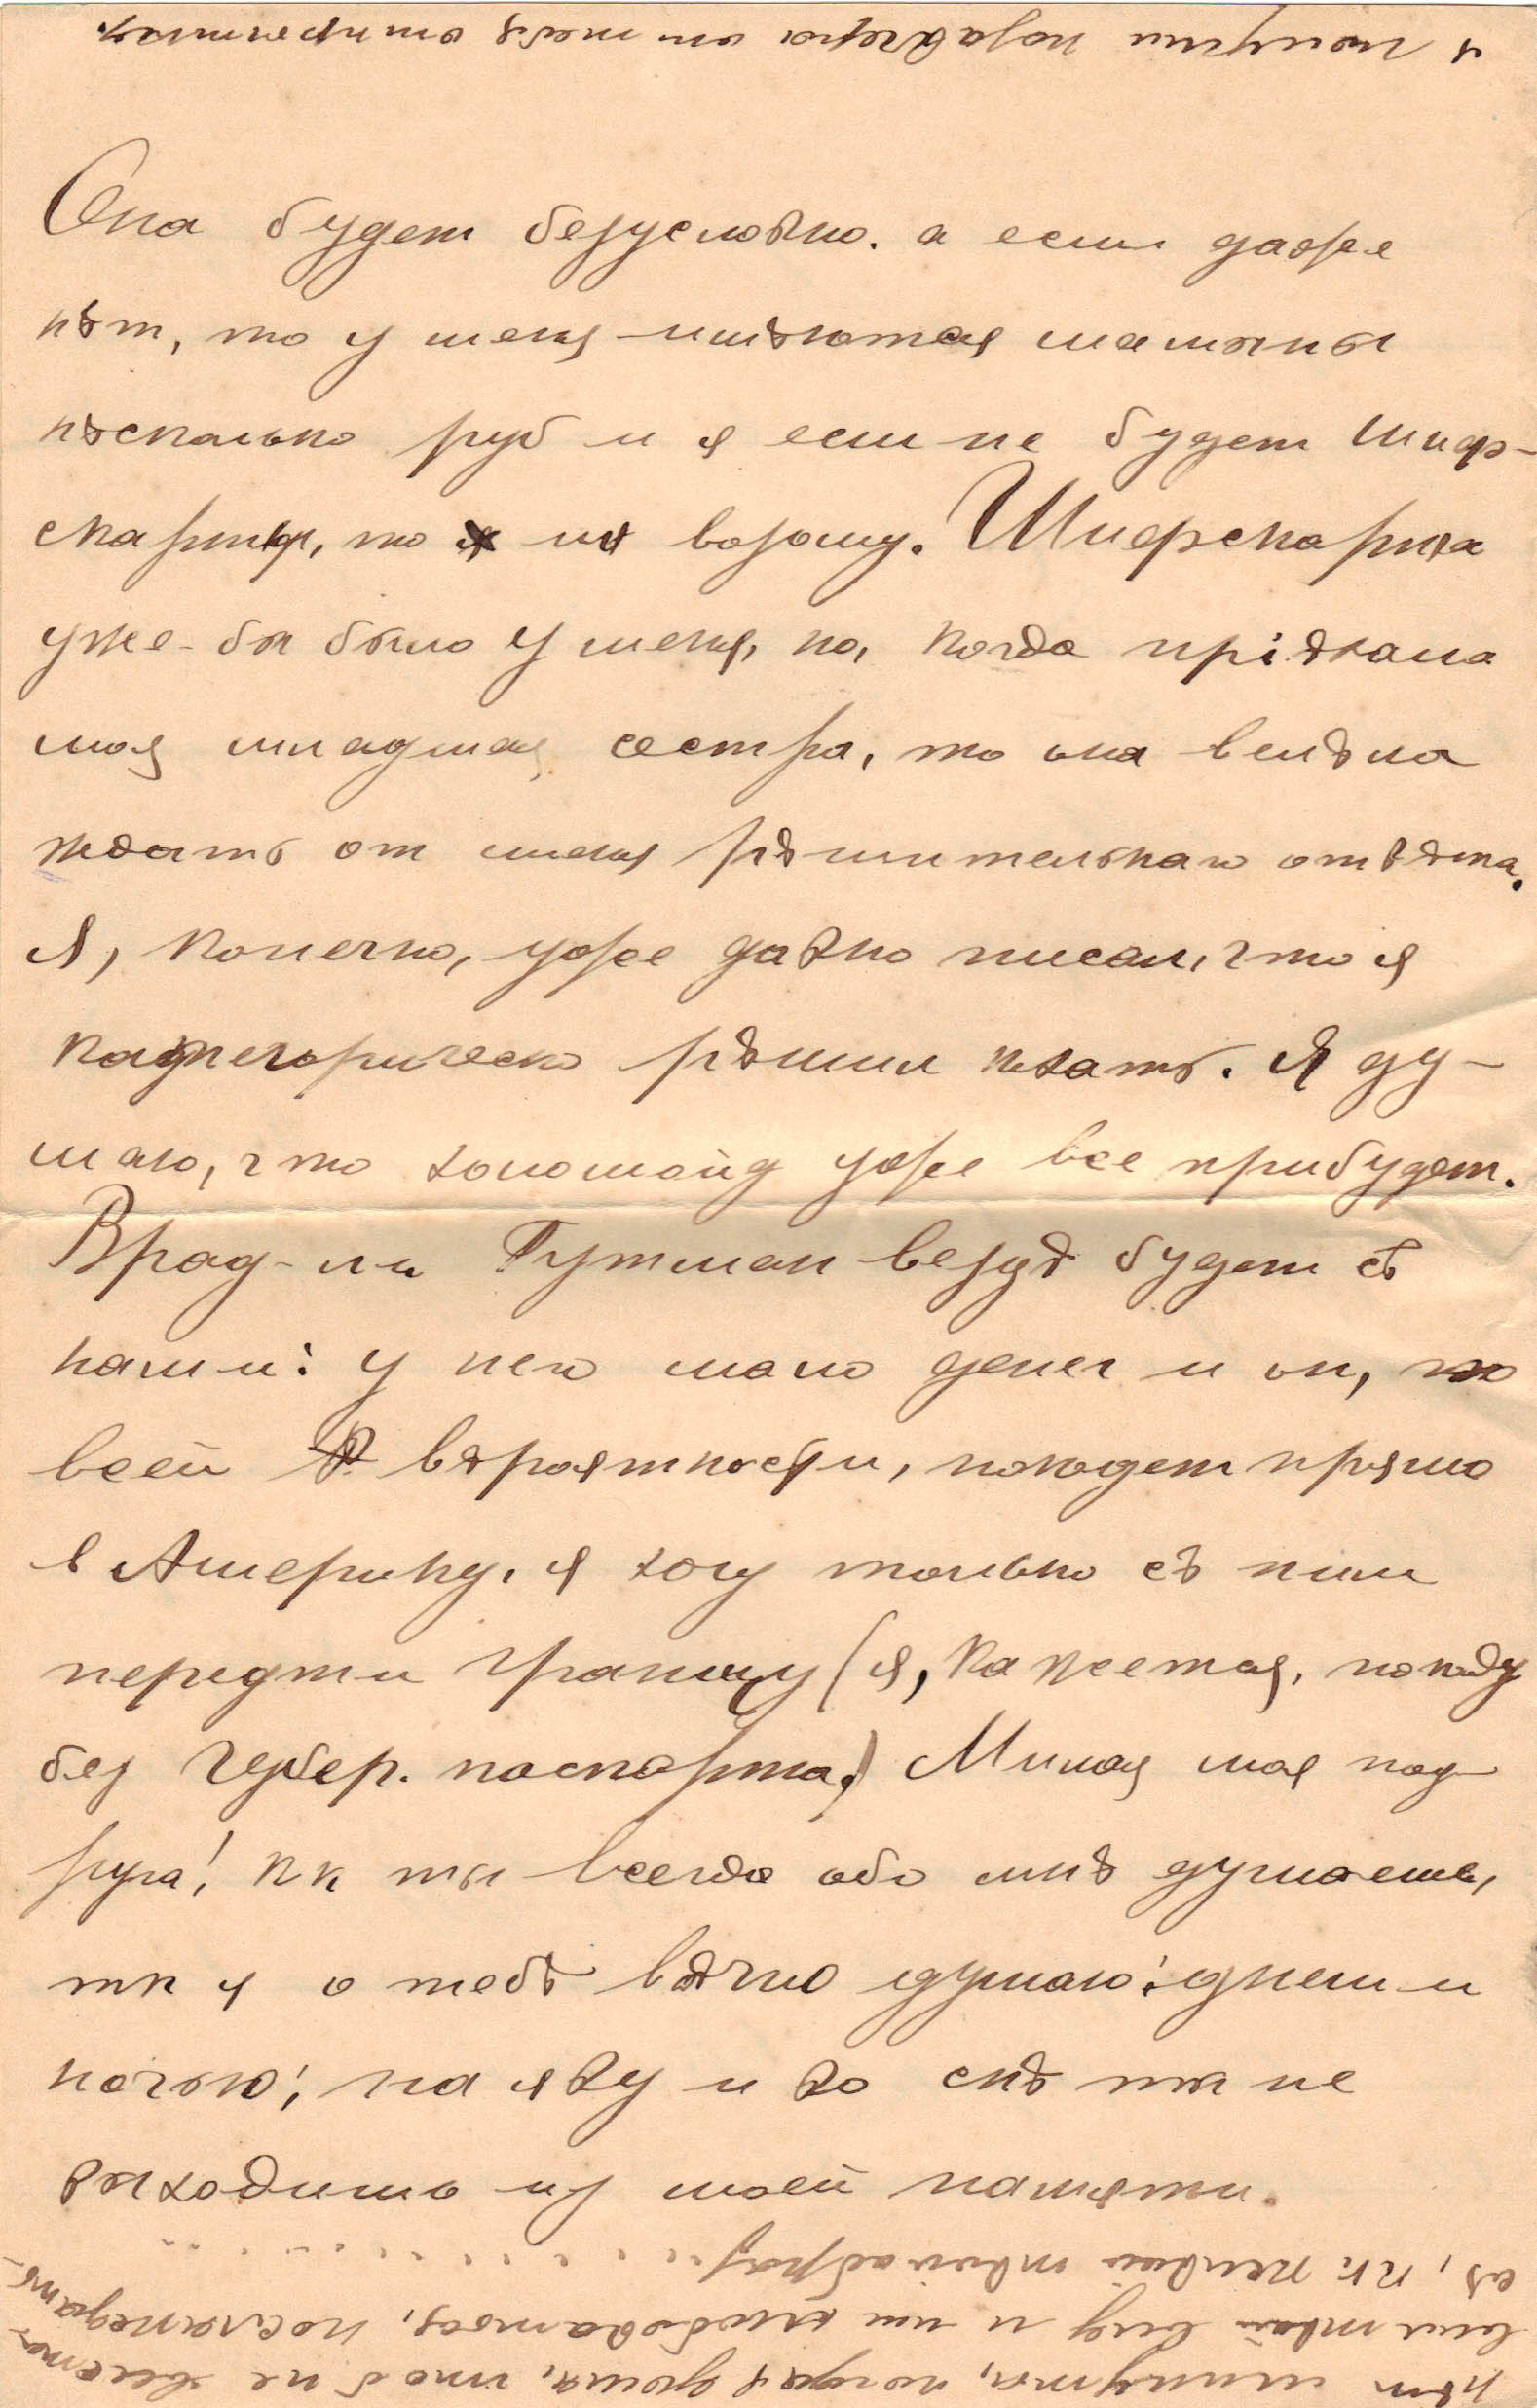 Letter to Poline from Aron March 12, 1914 p04